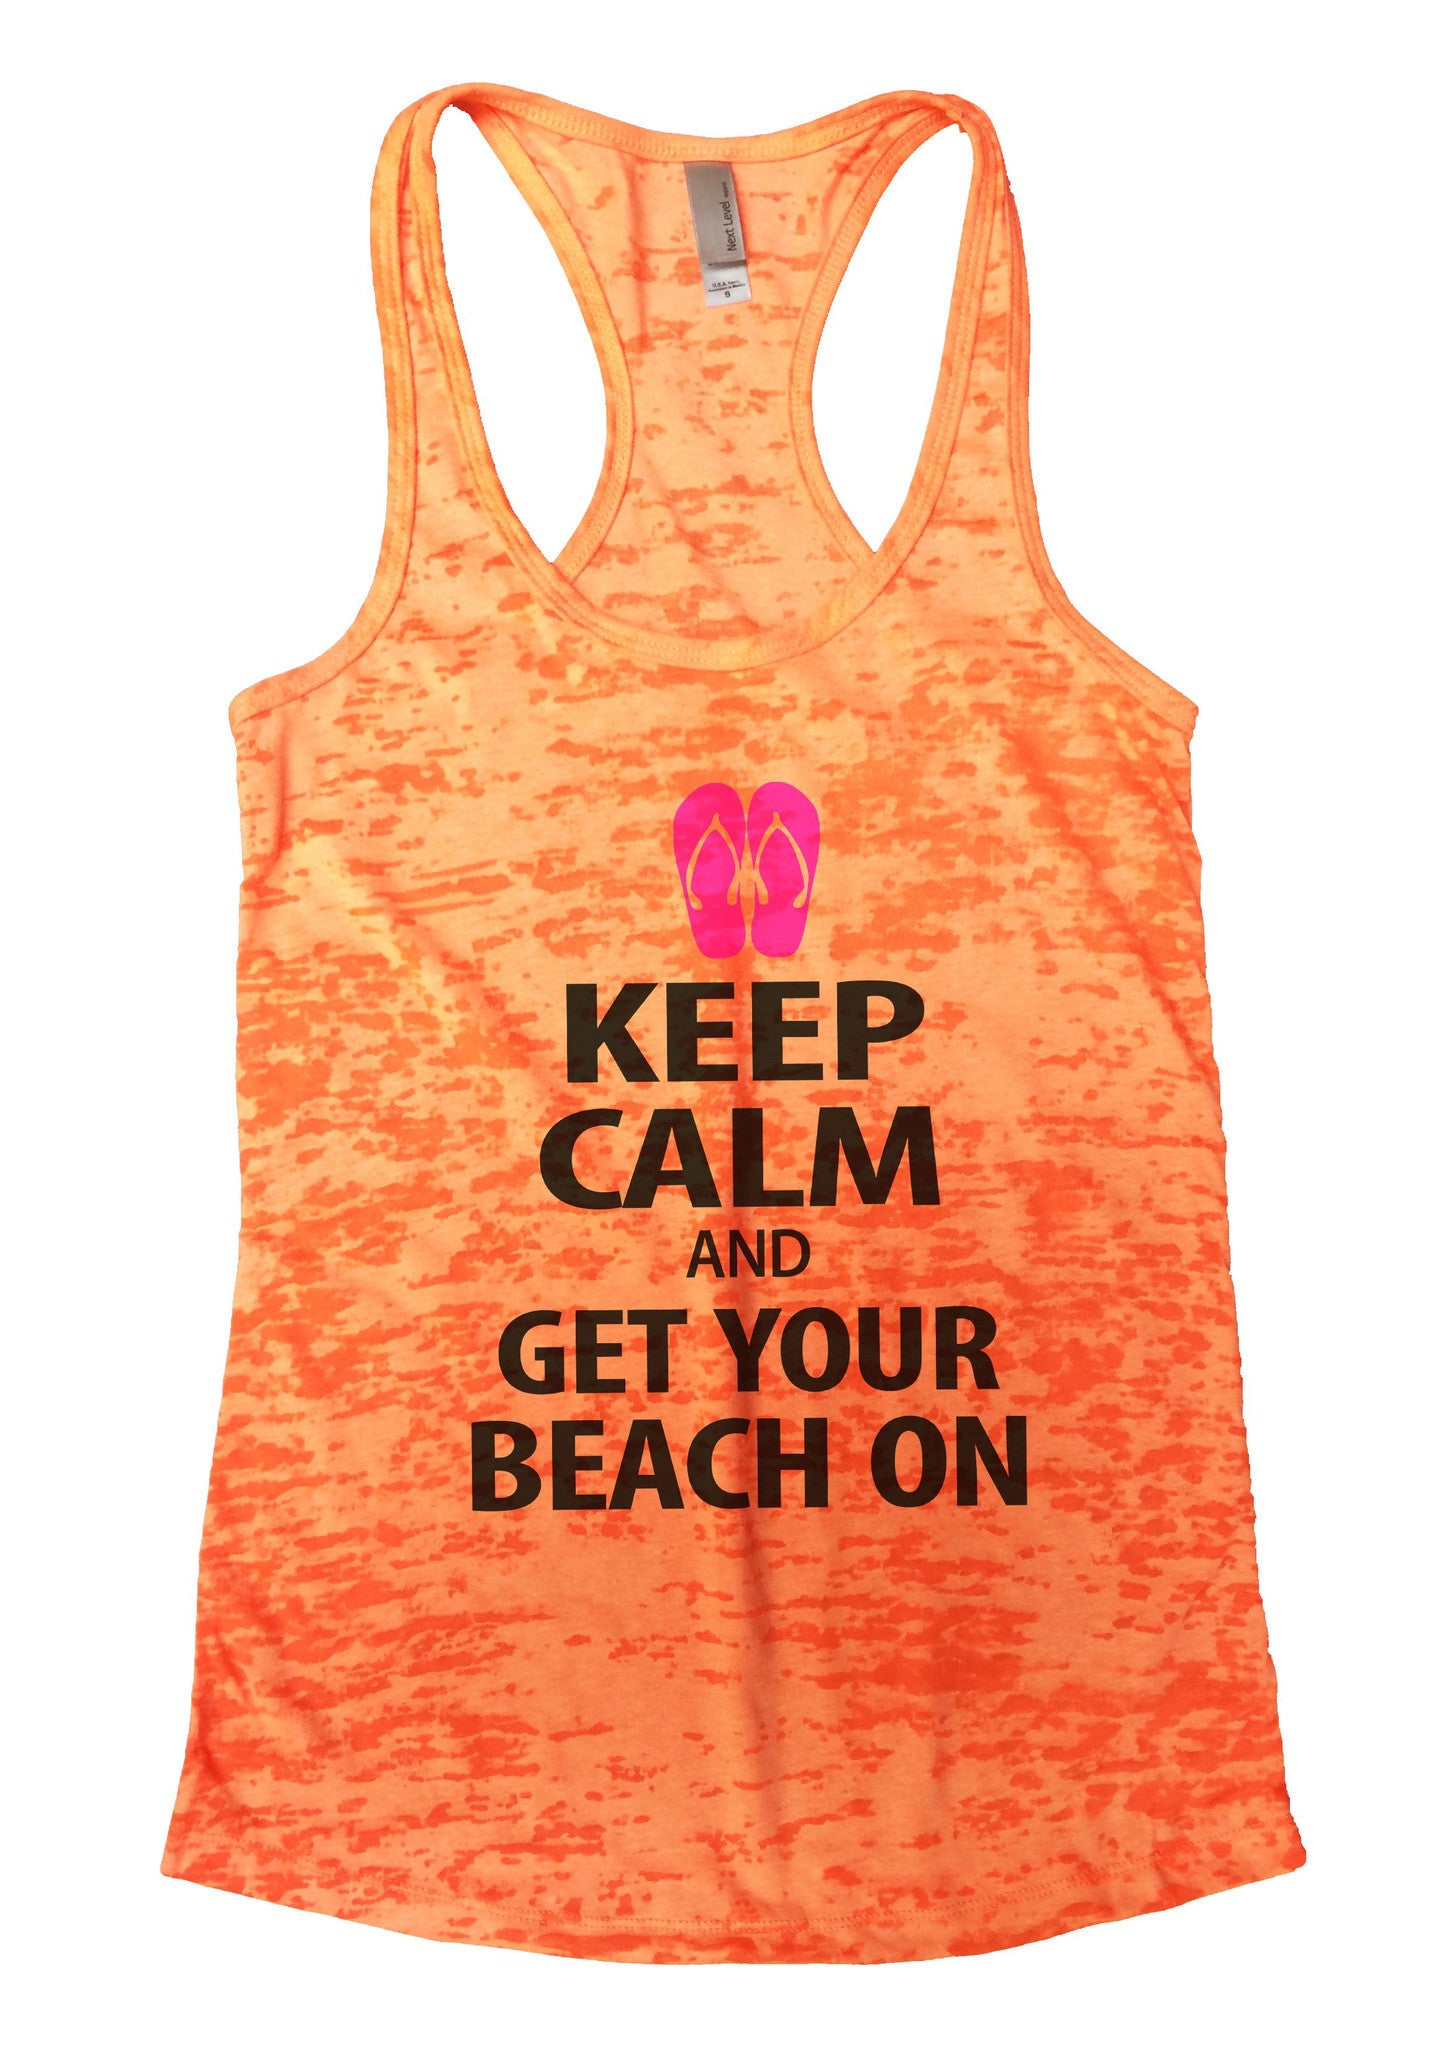 Keep Calm And Get Your Beach On Burnout Tank Top By BurnoutTankTops.com - 550 - Funny Shirts Tank Tops Burnouts and Triblends  - 3